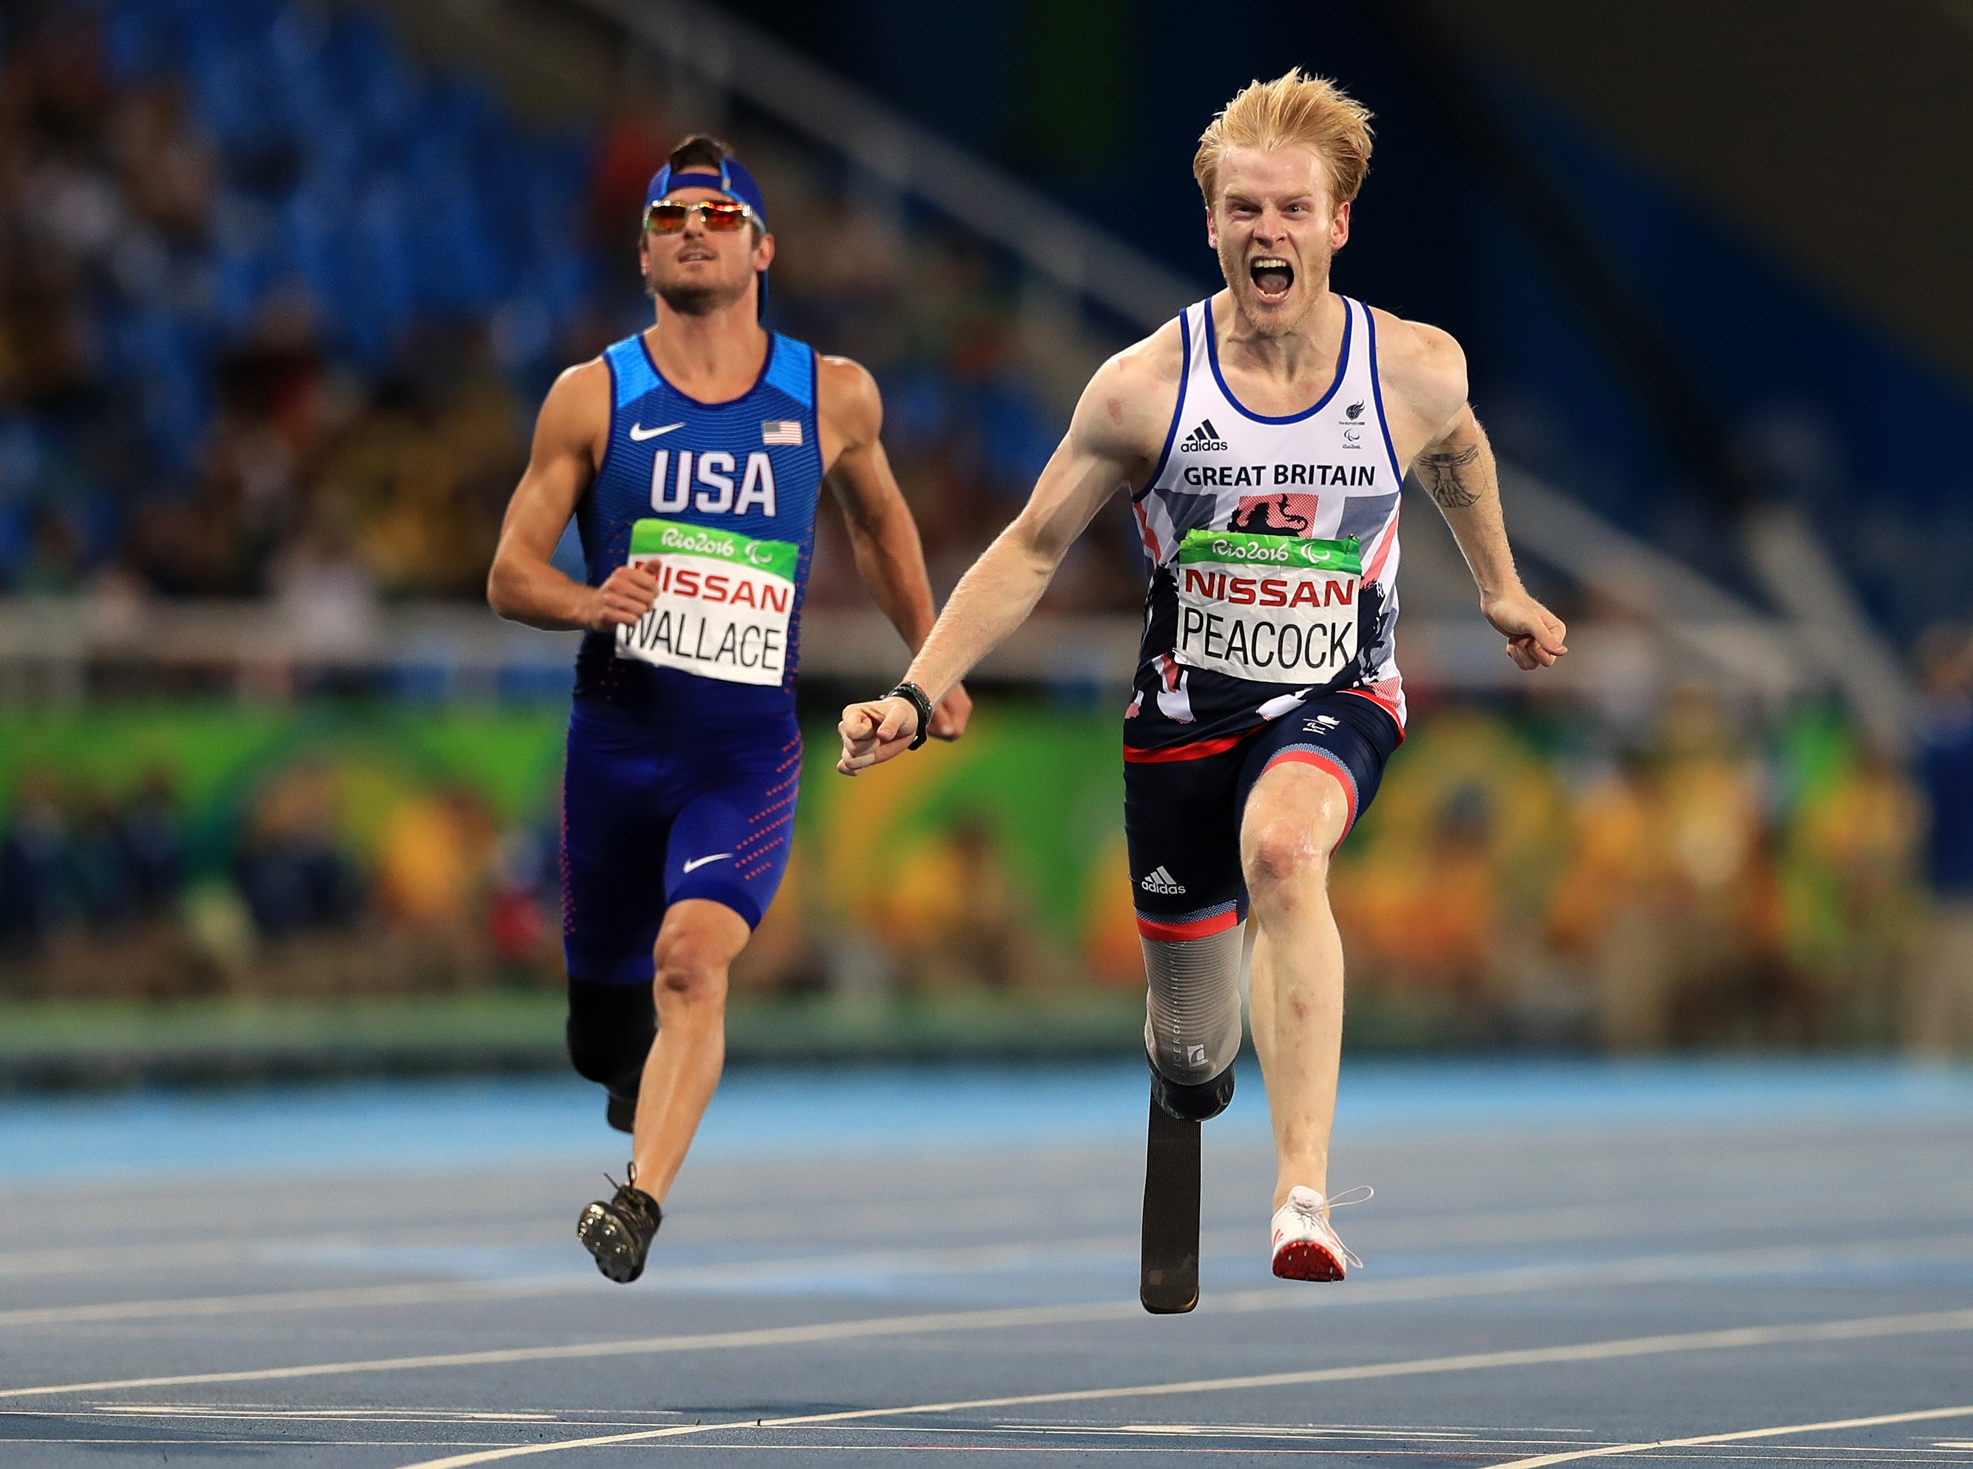 Jonnie Peacock celebrates winning Gold during the Men's 100m - T44 final during the second day of the 2016 Rio Paralympic Games, Brazil. (Adam Davy/PA)